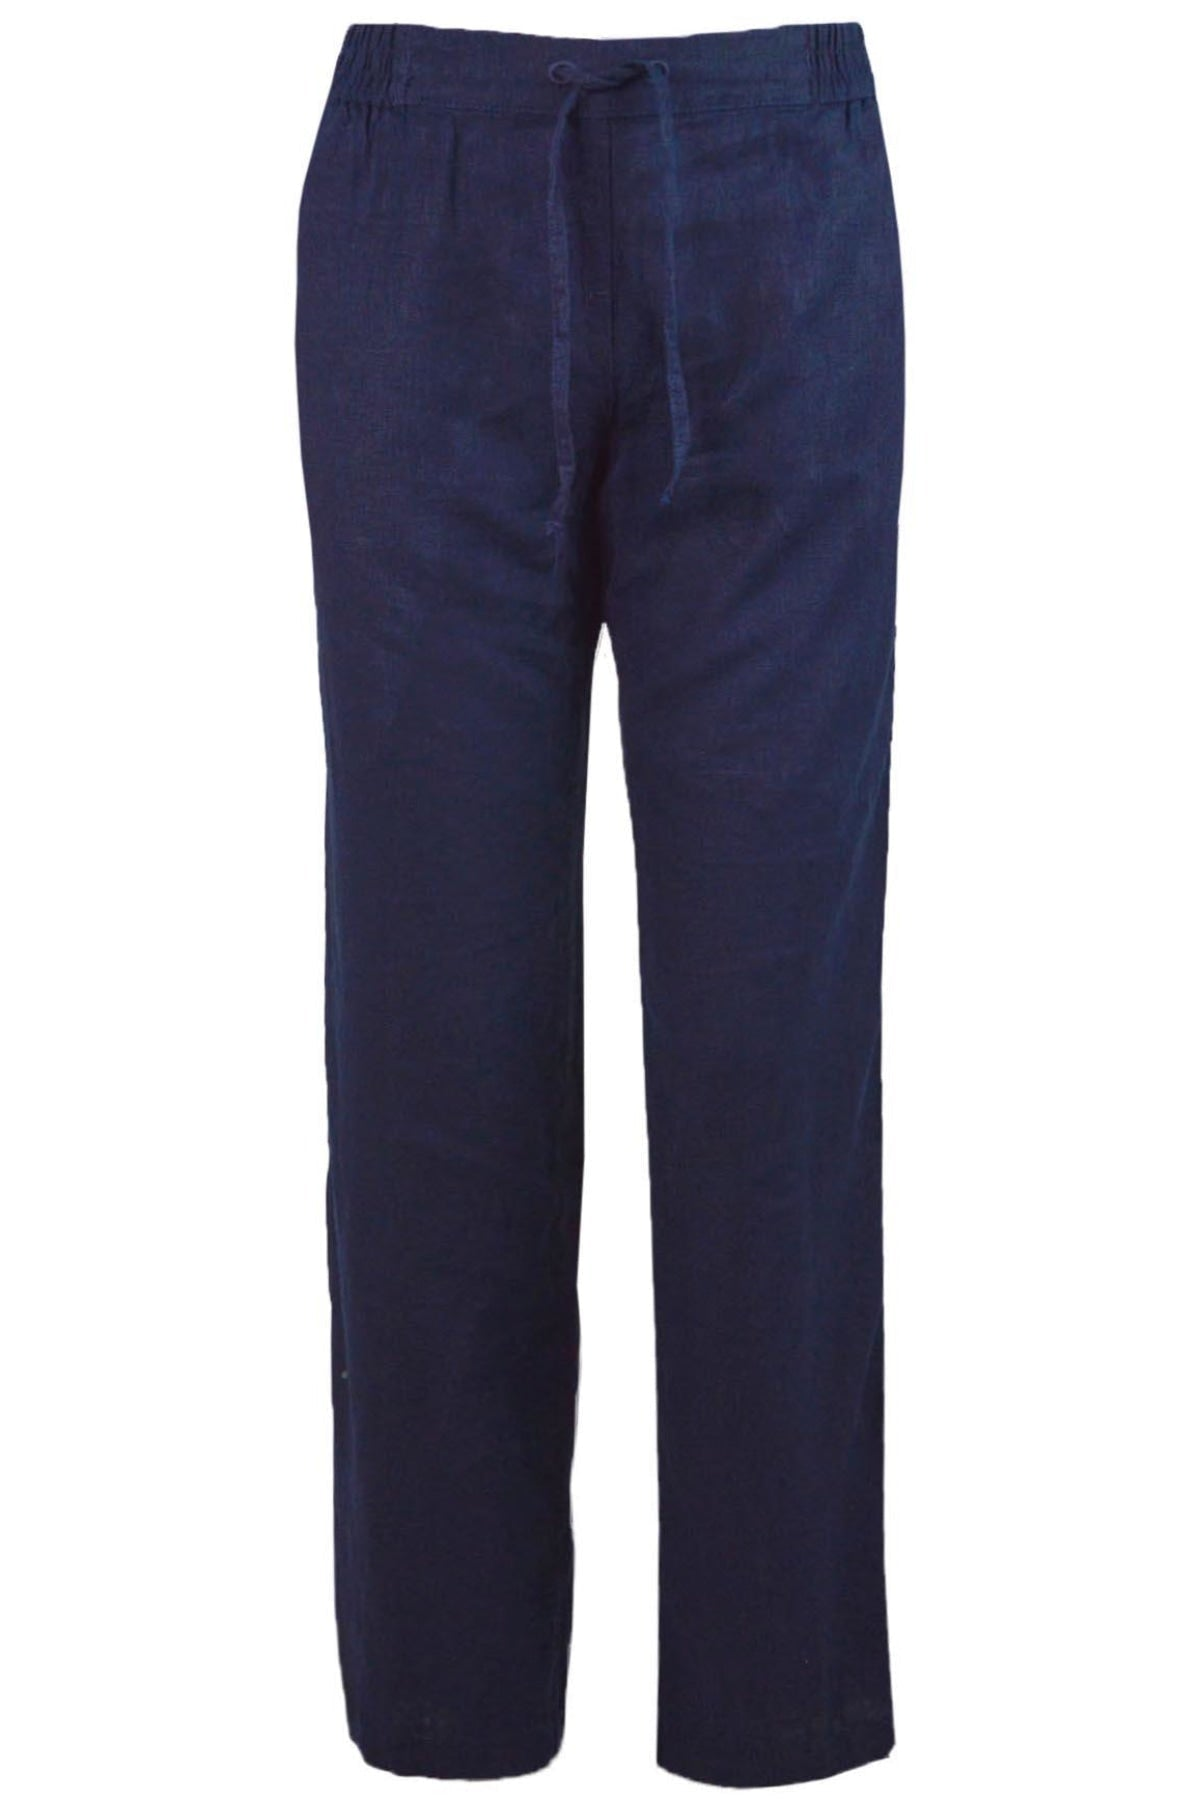 Next Ex Next Wide Leg Linen Trousers Stretch Waist | Secret Label